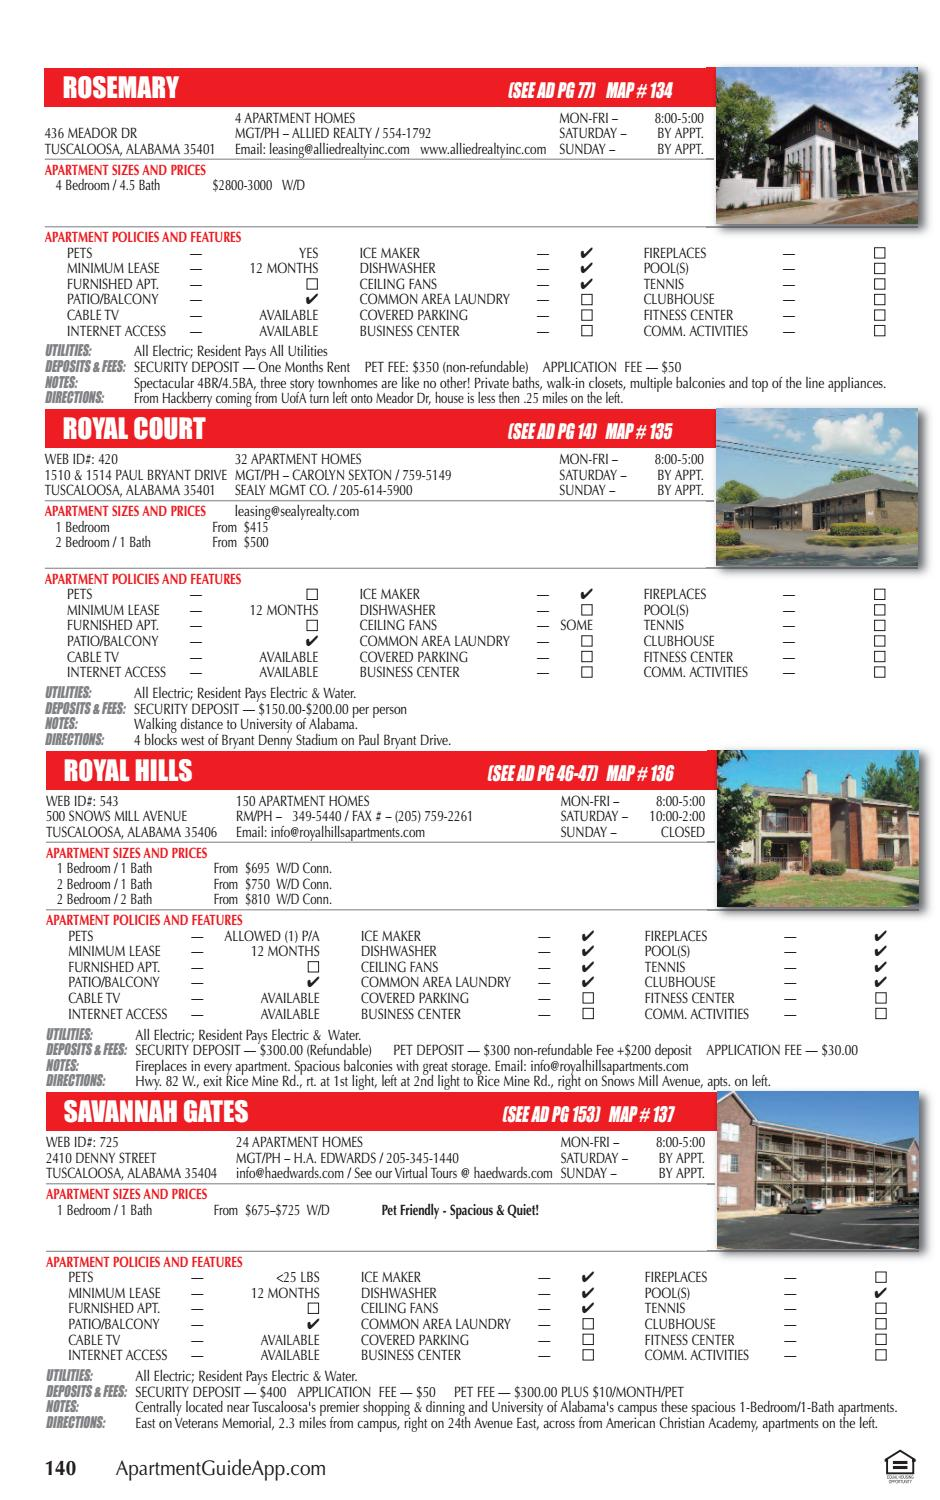 Tuscaloosa Apartment Guide By Jim Andrews   Issuu